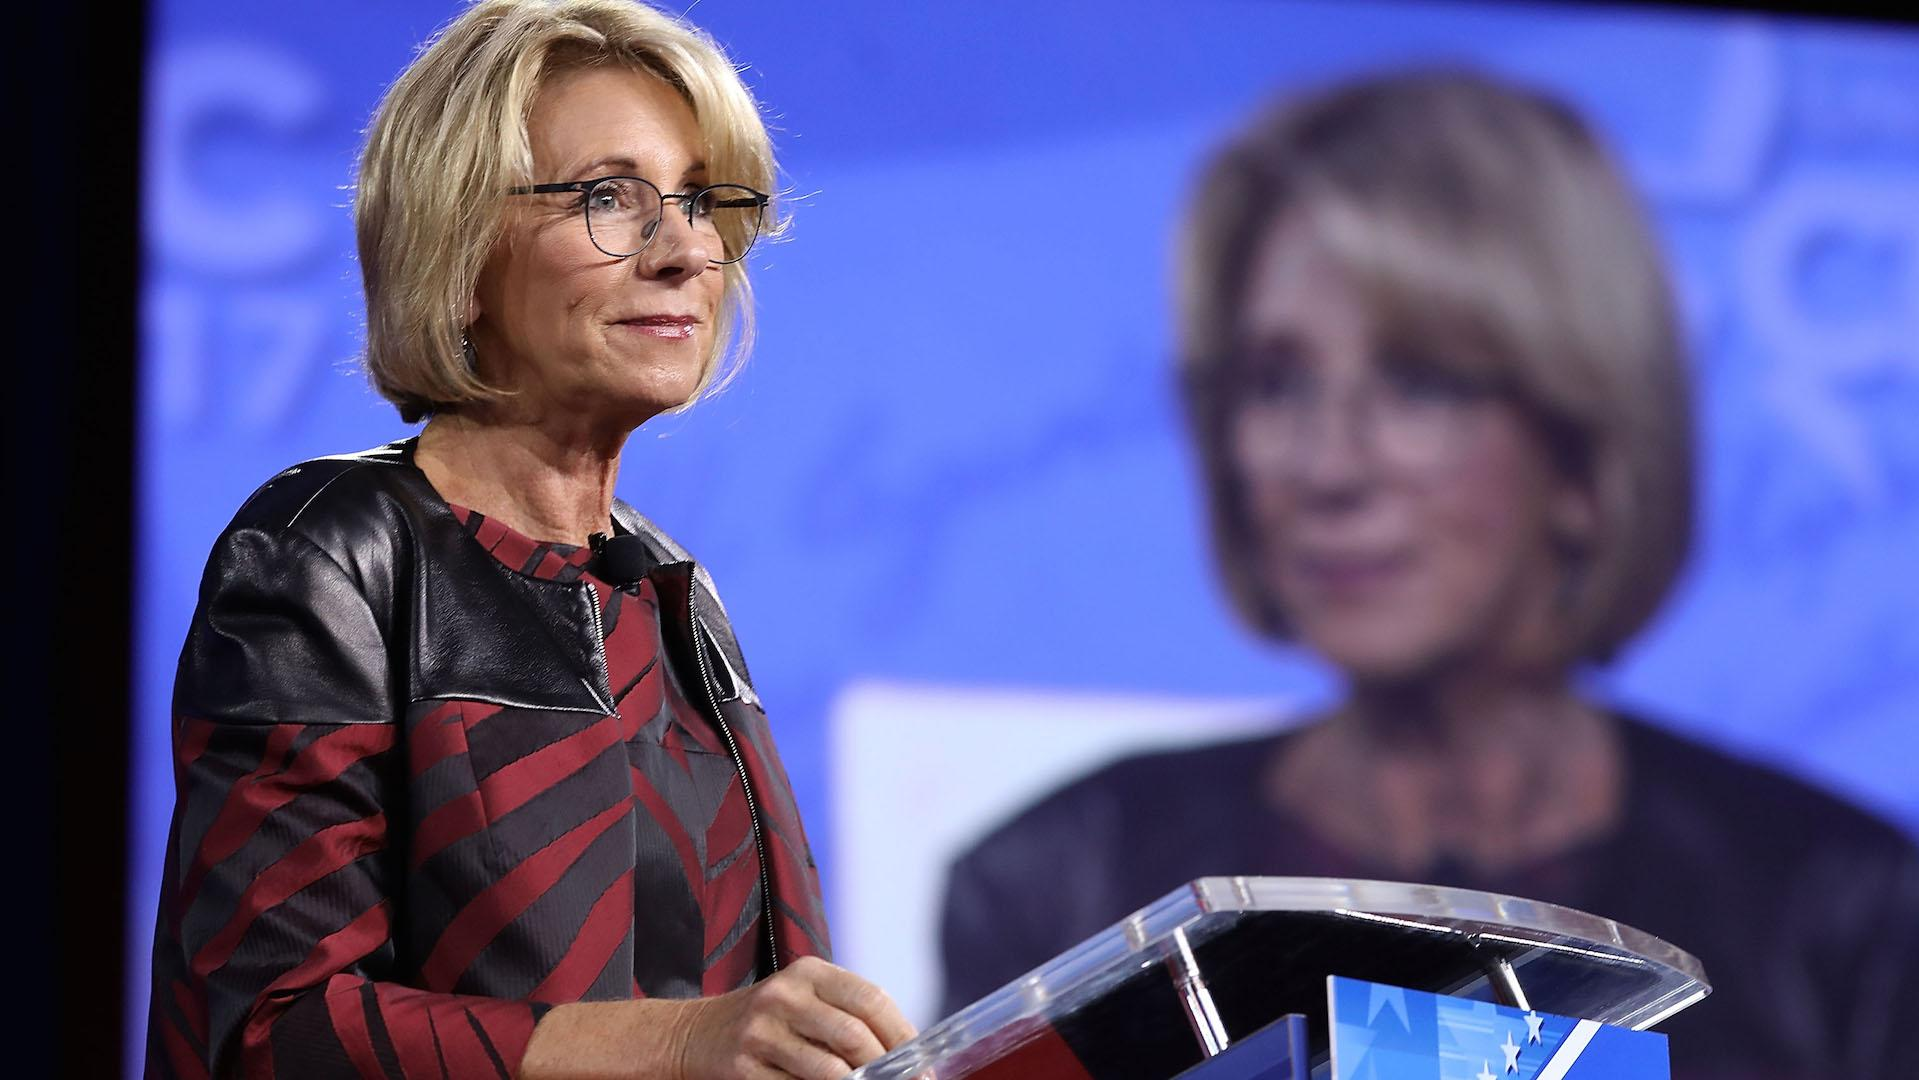 DeVos: 'Media has had its fun with me, and that's okay'